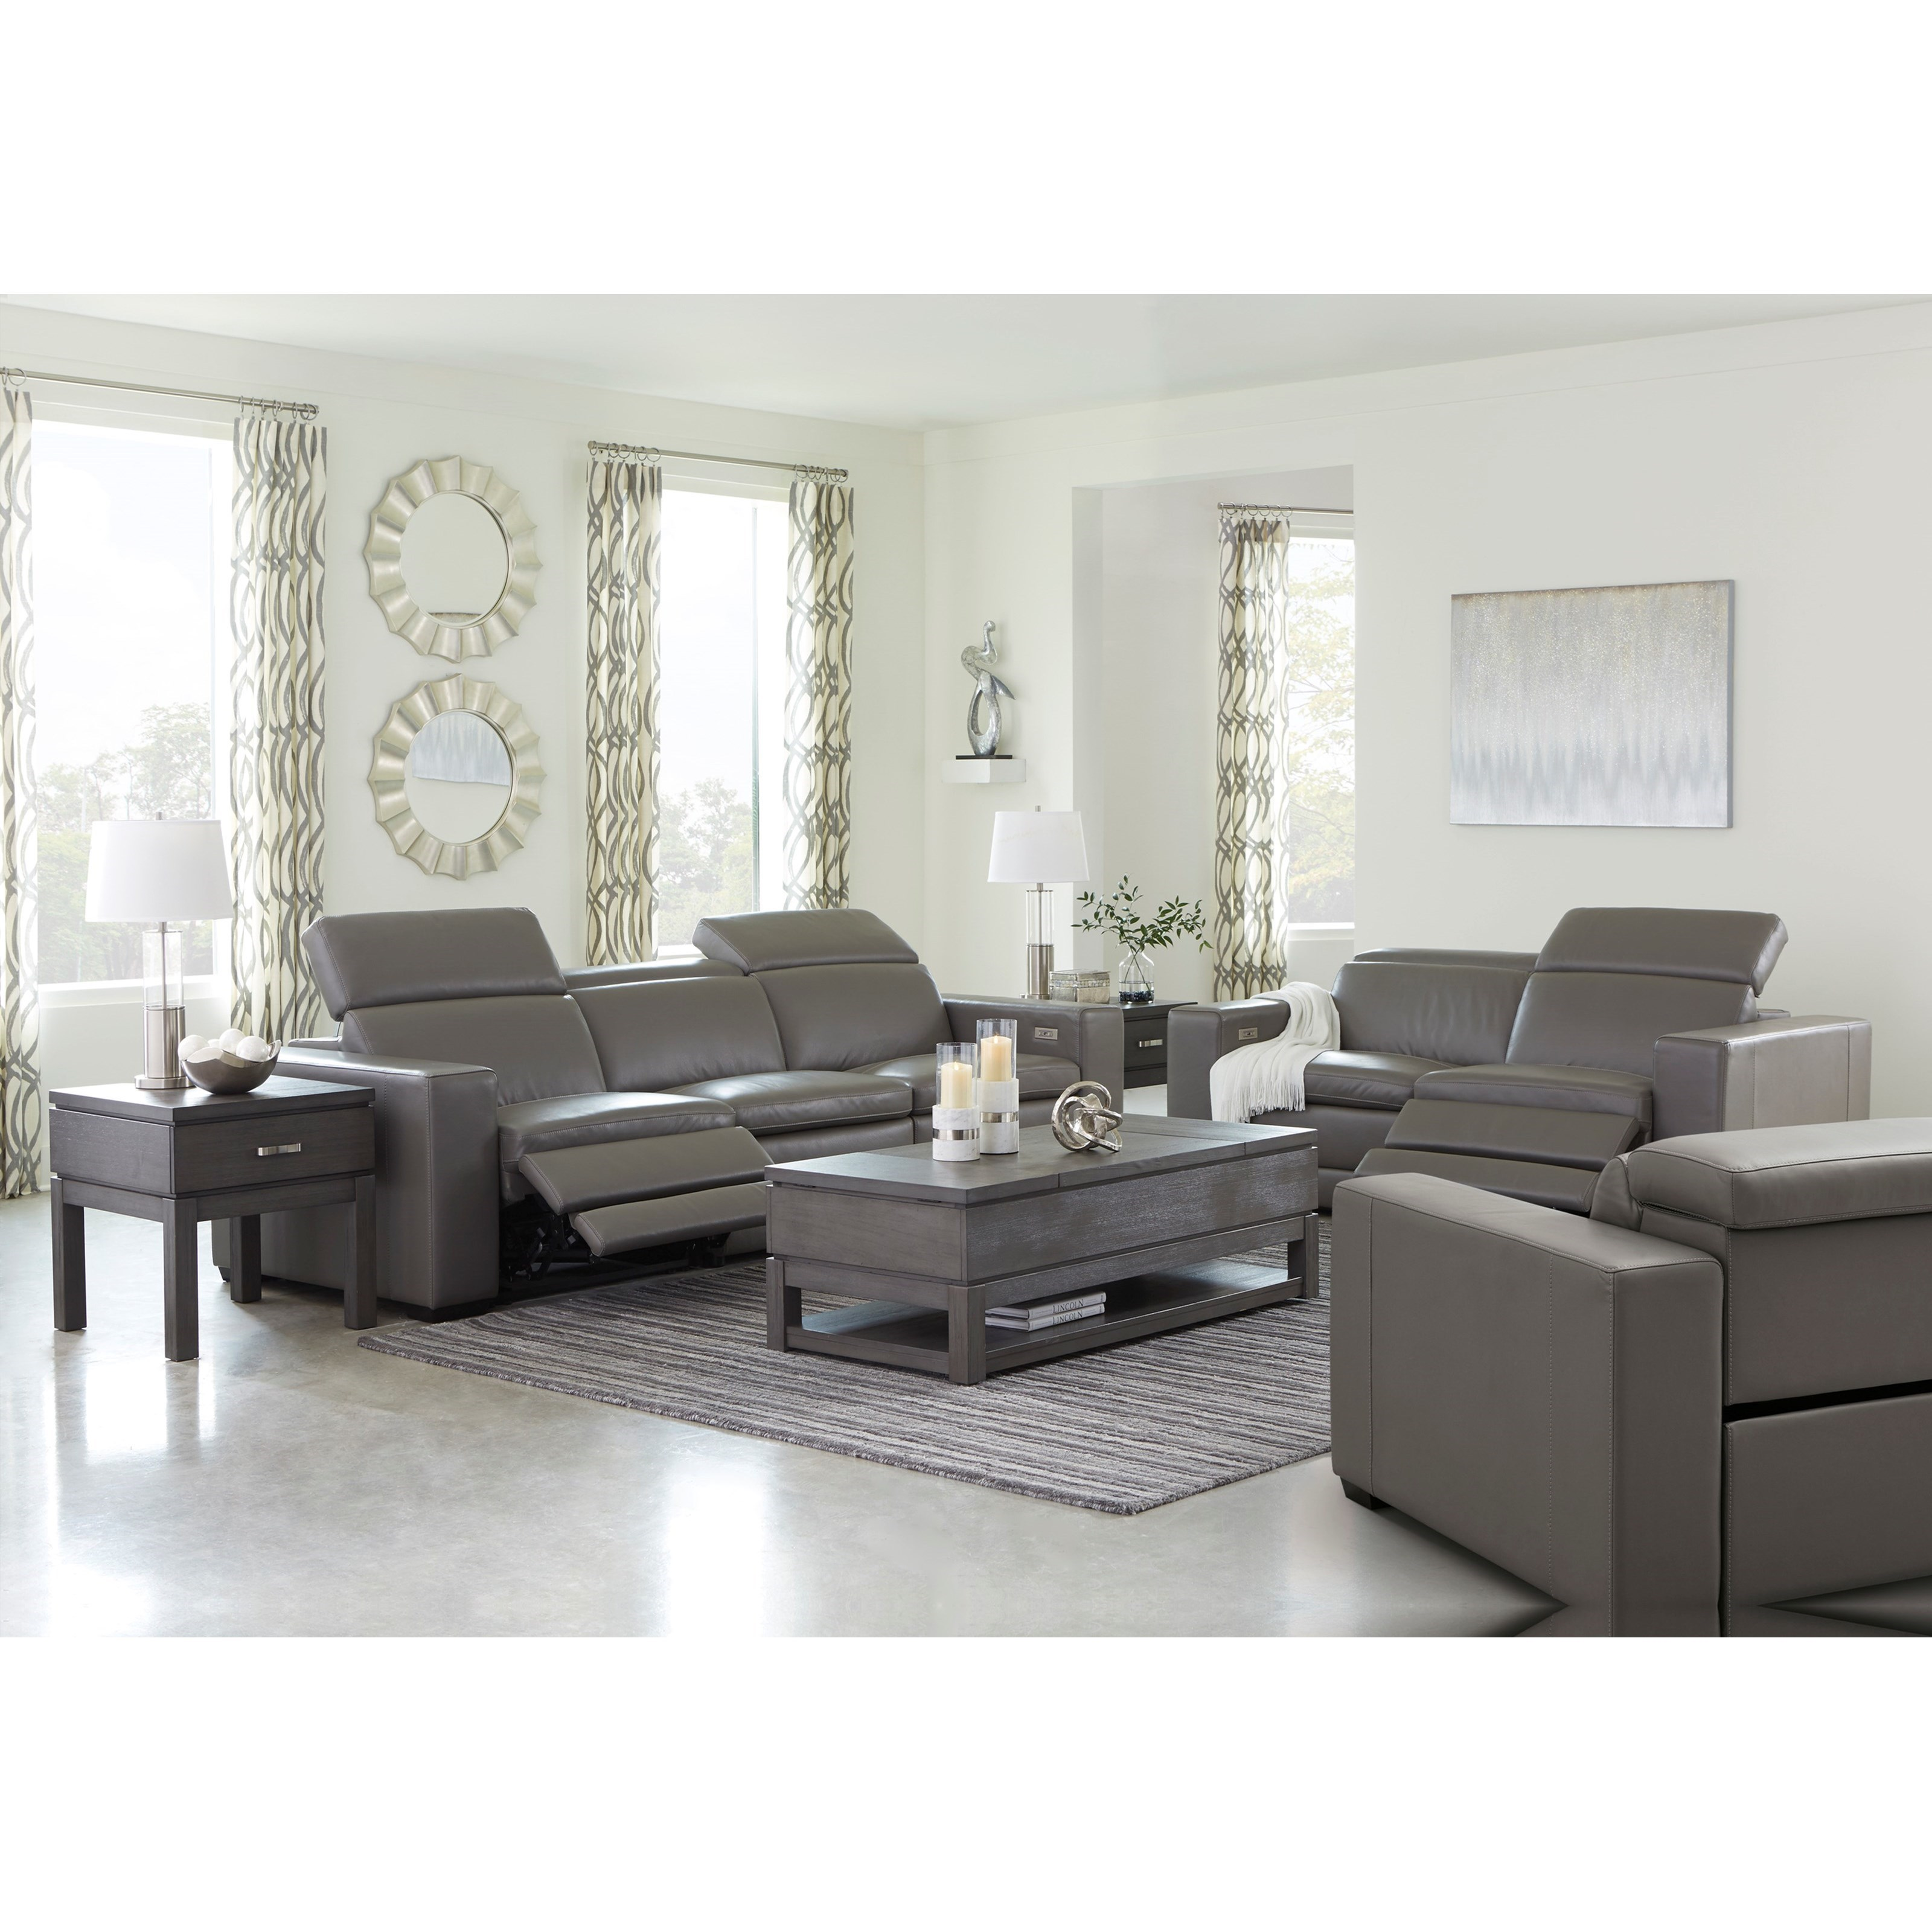 Texline Power Reclining Living Room Group by Signature Design by Ashley at Home Furnishings Direct